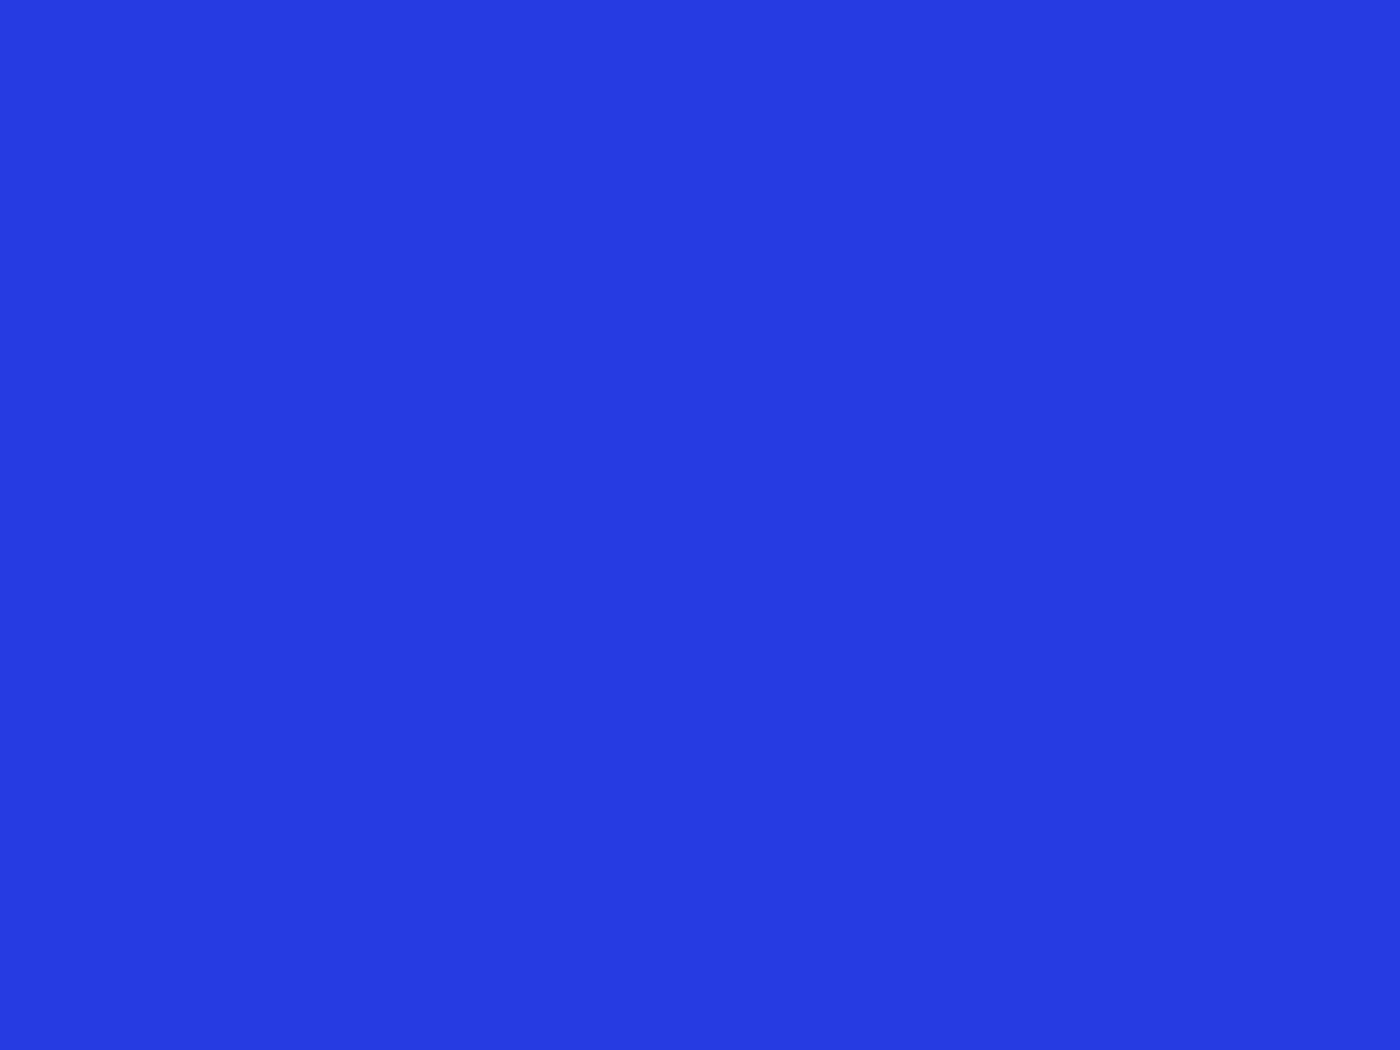 1400x1050 Palatinate Blue Solid Color Background